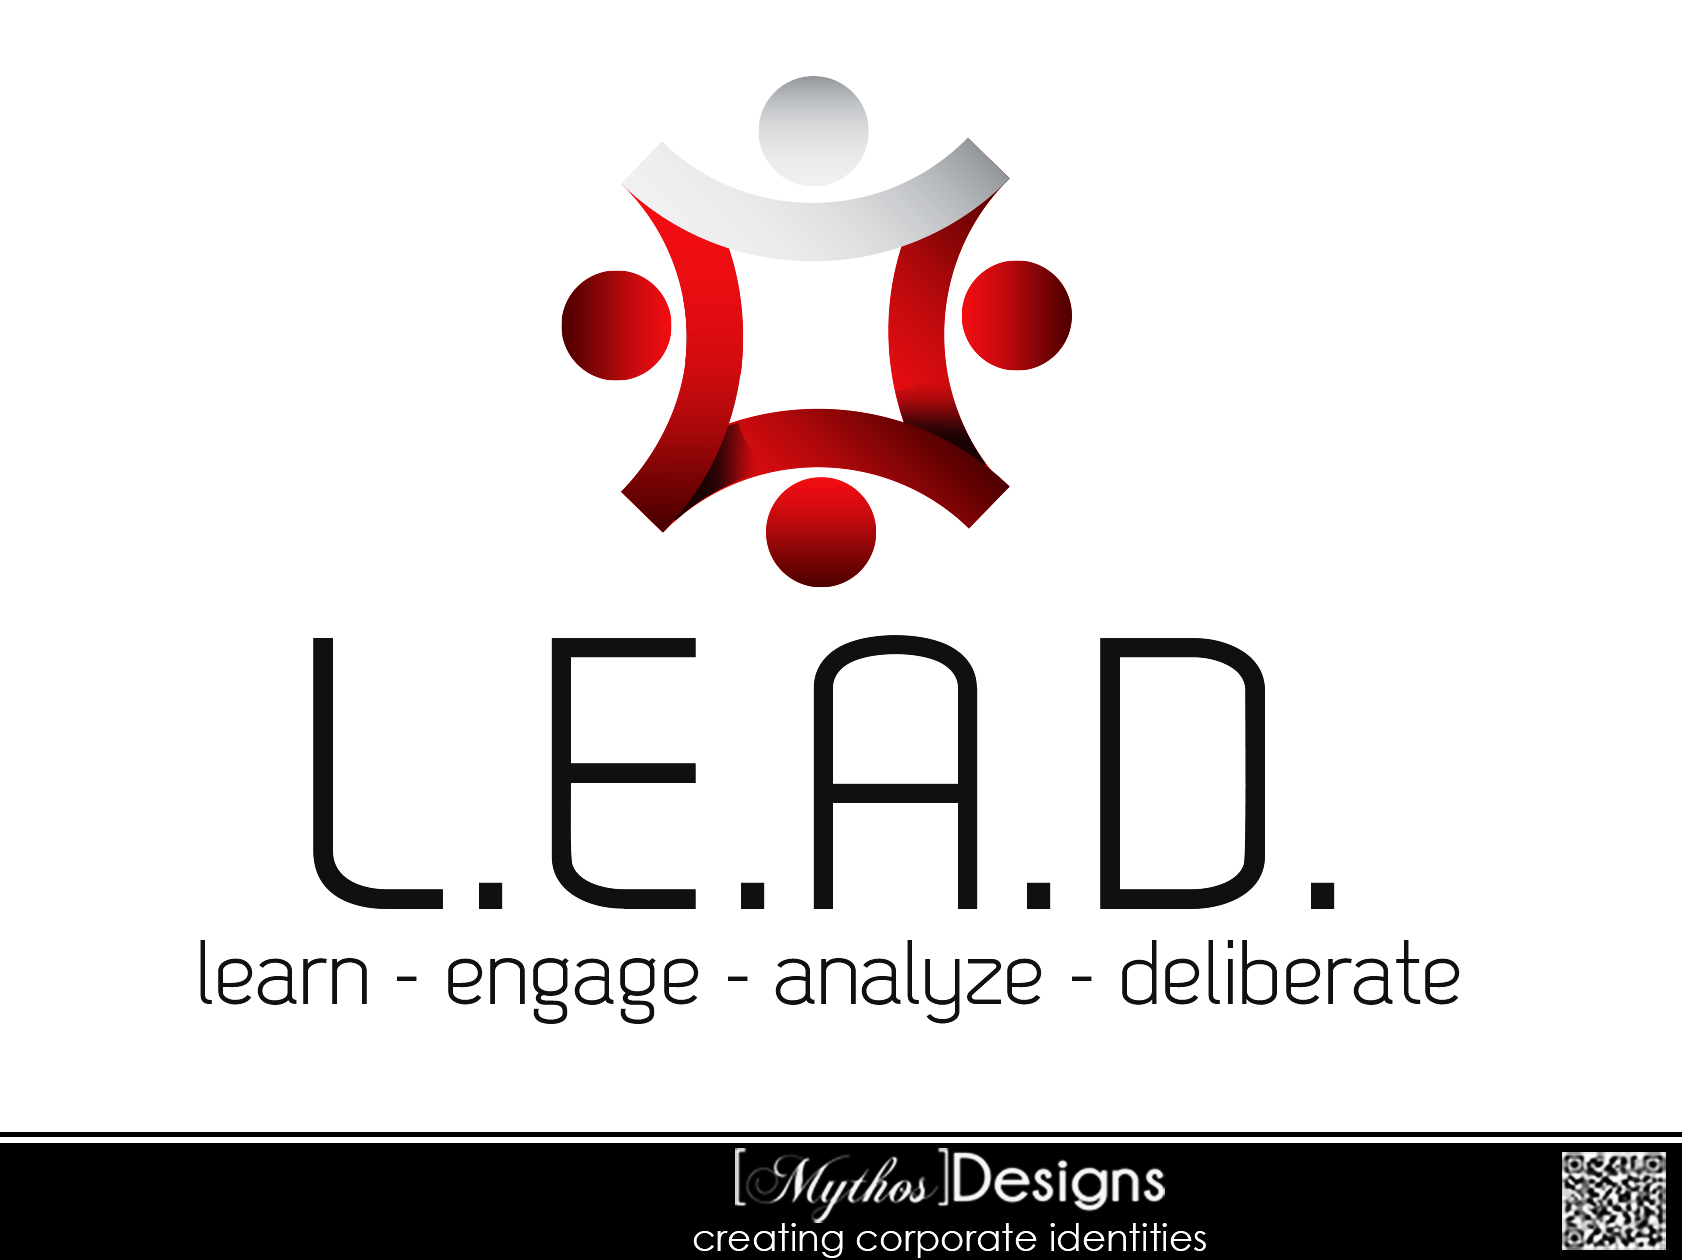 Logo Design by Mythos Designs - Entry No. 60 in the Logo Design Contest L.E.A.D. (learn, engage, analyze, deliberate) Logo Design.